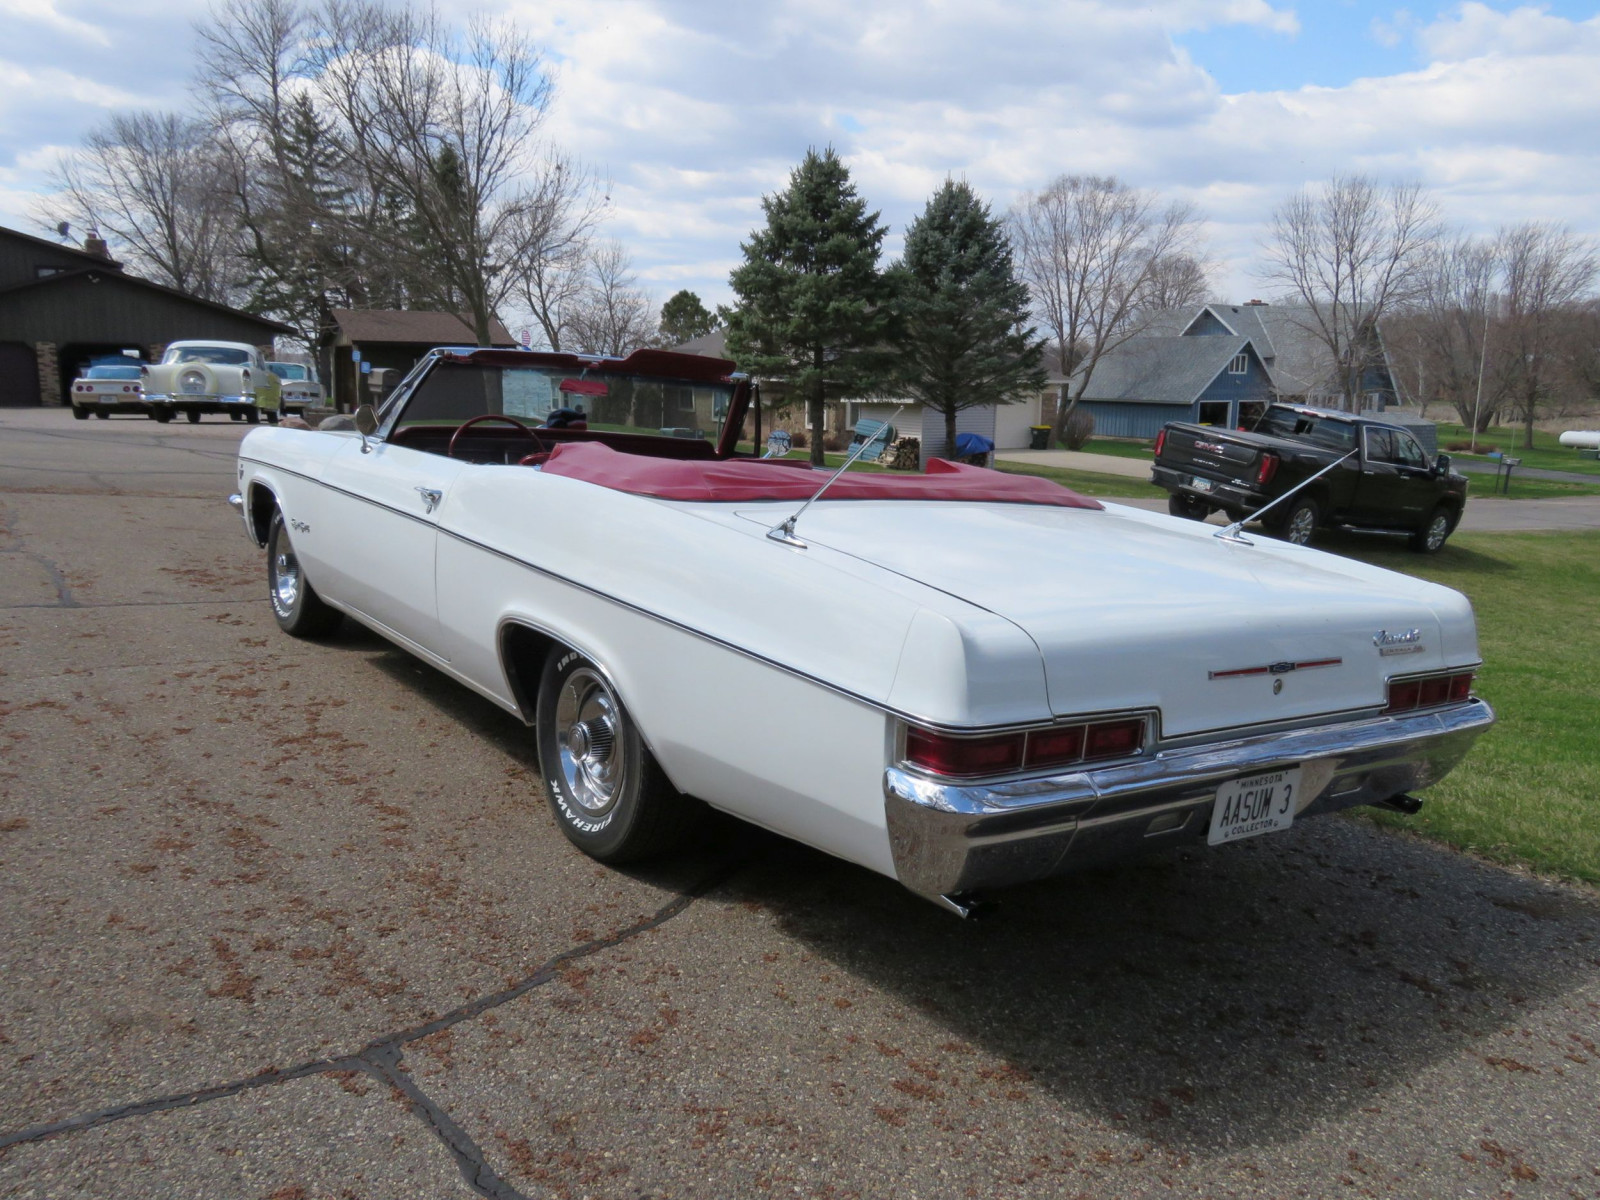 1966 Chevrolet Impala SS Convertible - Image 6